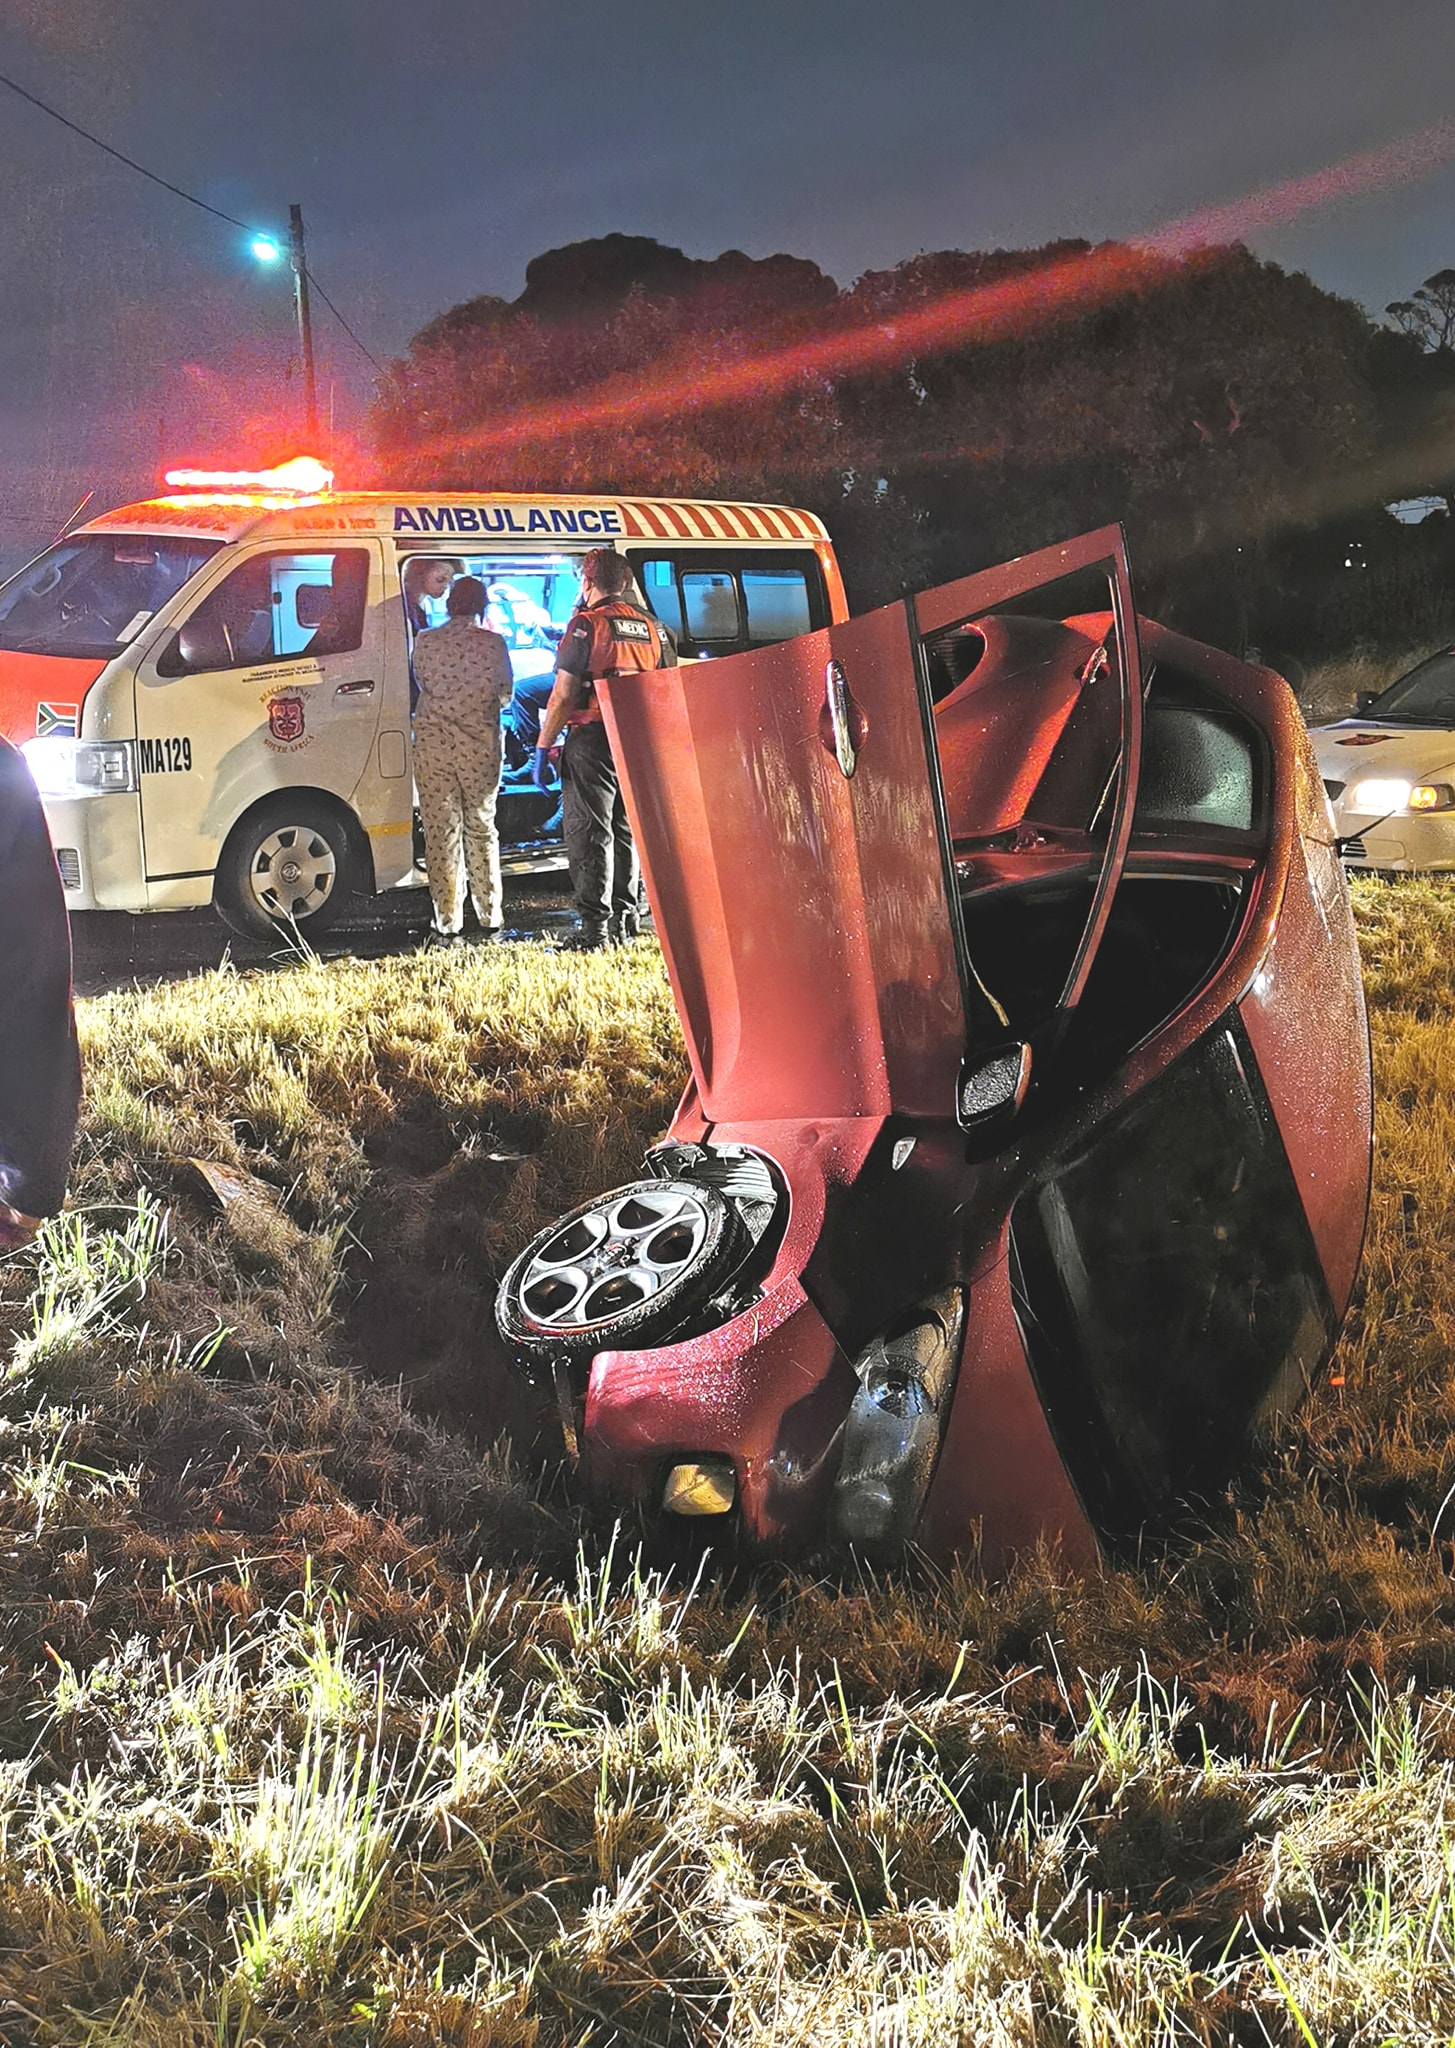 One injured in vehicle rollover on Inanda road in Verulam